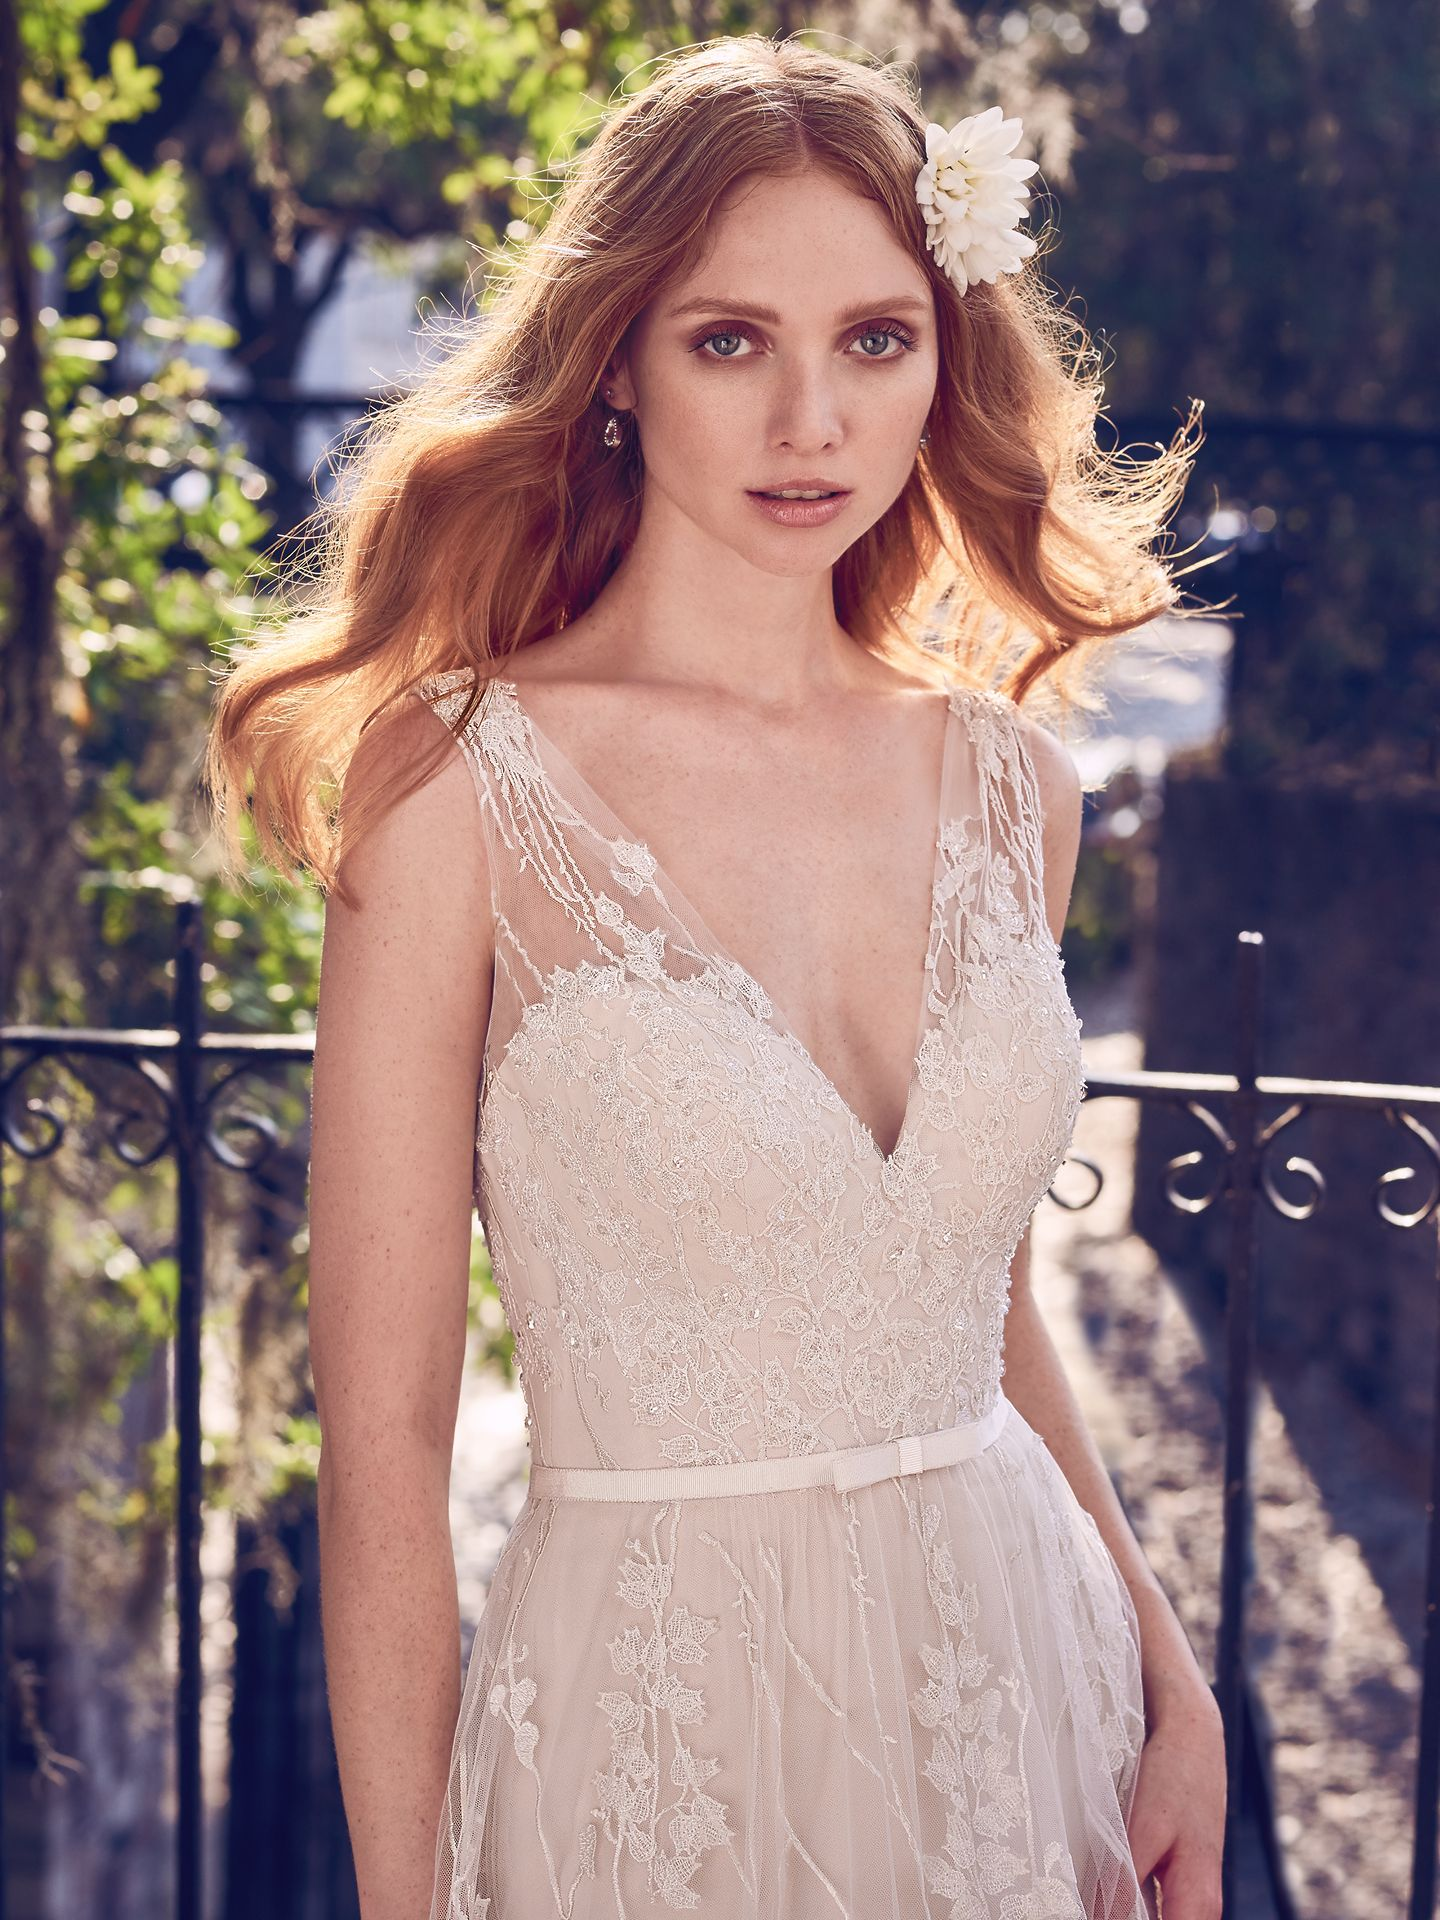 6 Best Wedding Dresses for a Rustic Wedding - Belecia wedding dress by Maggie Sottero